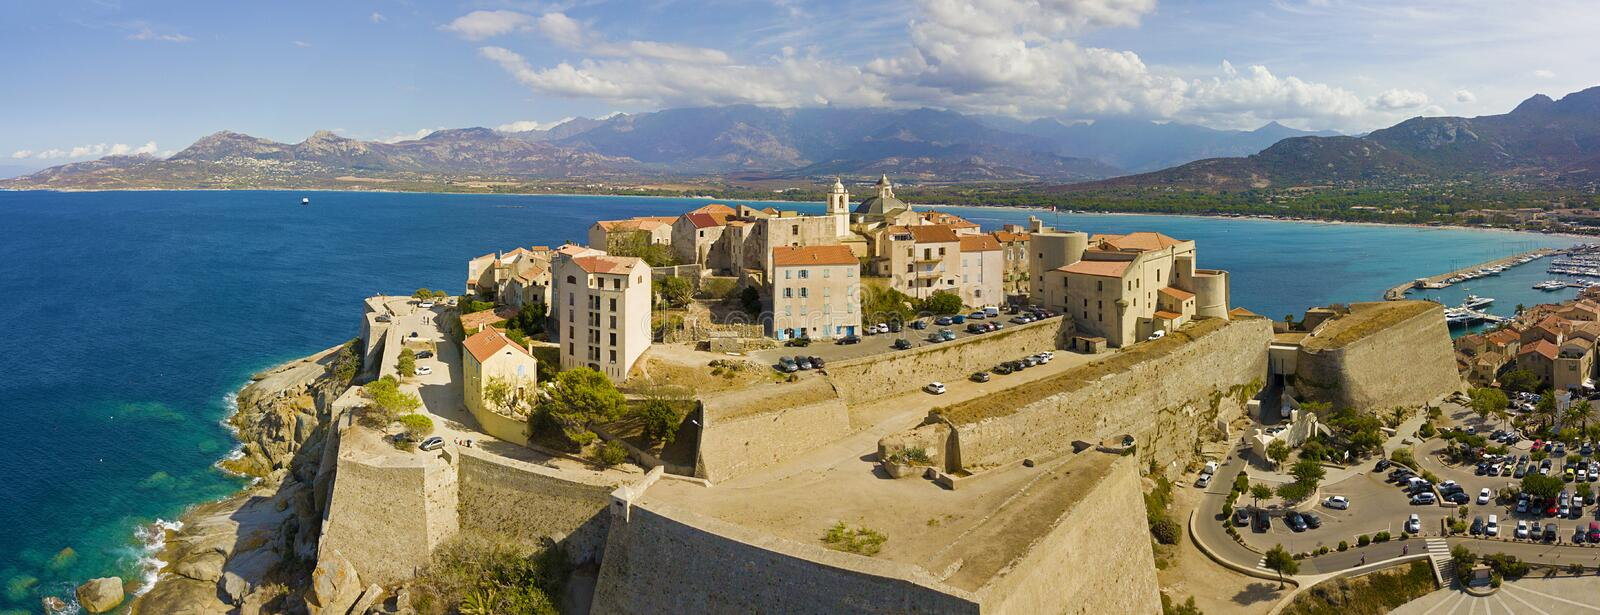 Aerial view of Calvi city, Corsica, France royalty free stock photo